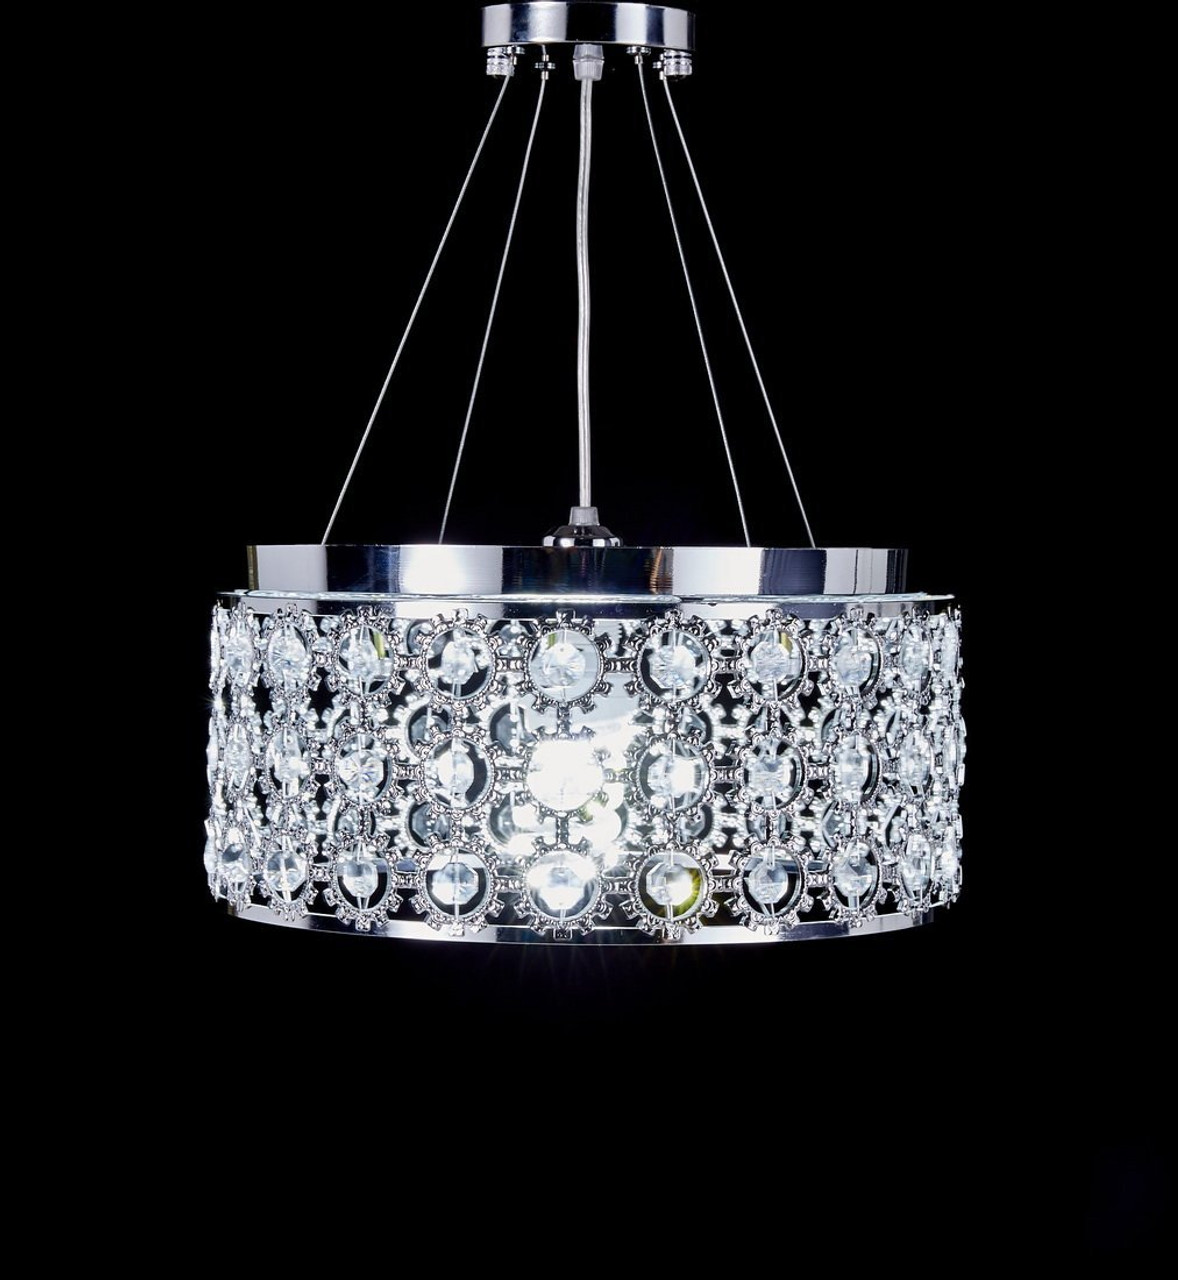 uk in lamp with chandelier fixture round lighting pendant light itm lights drops crystal drum modern ceiling